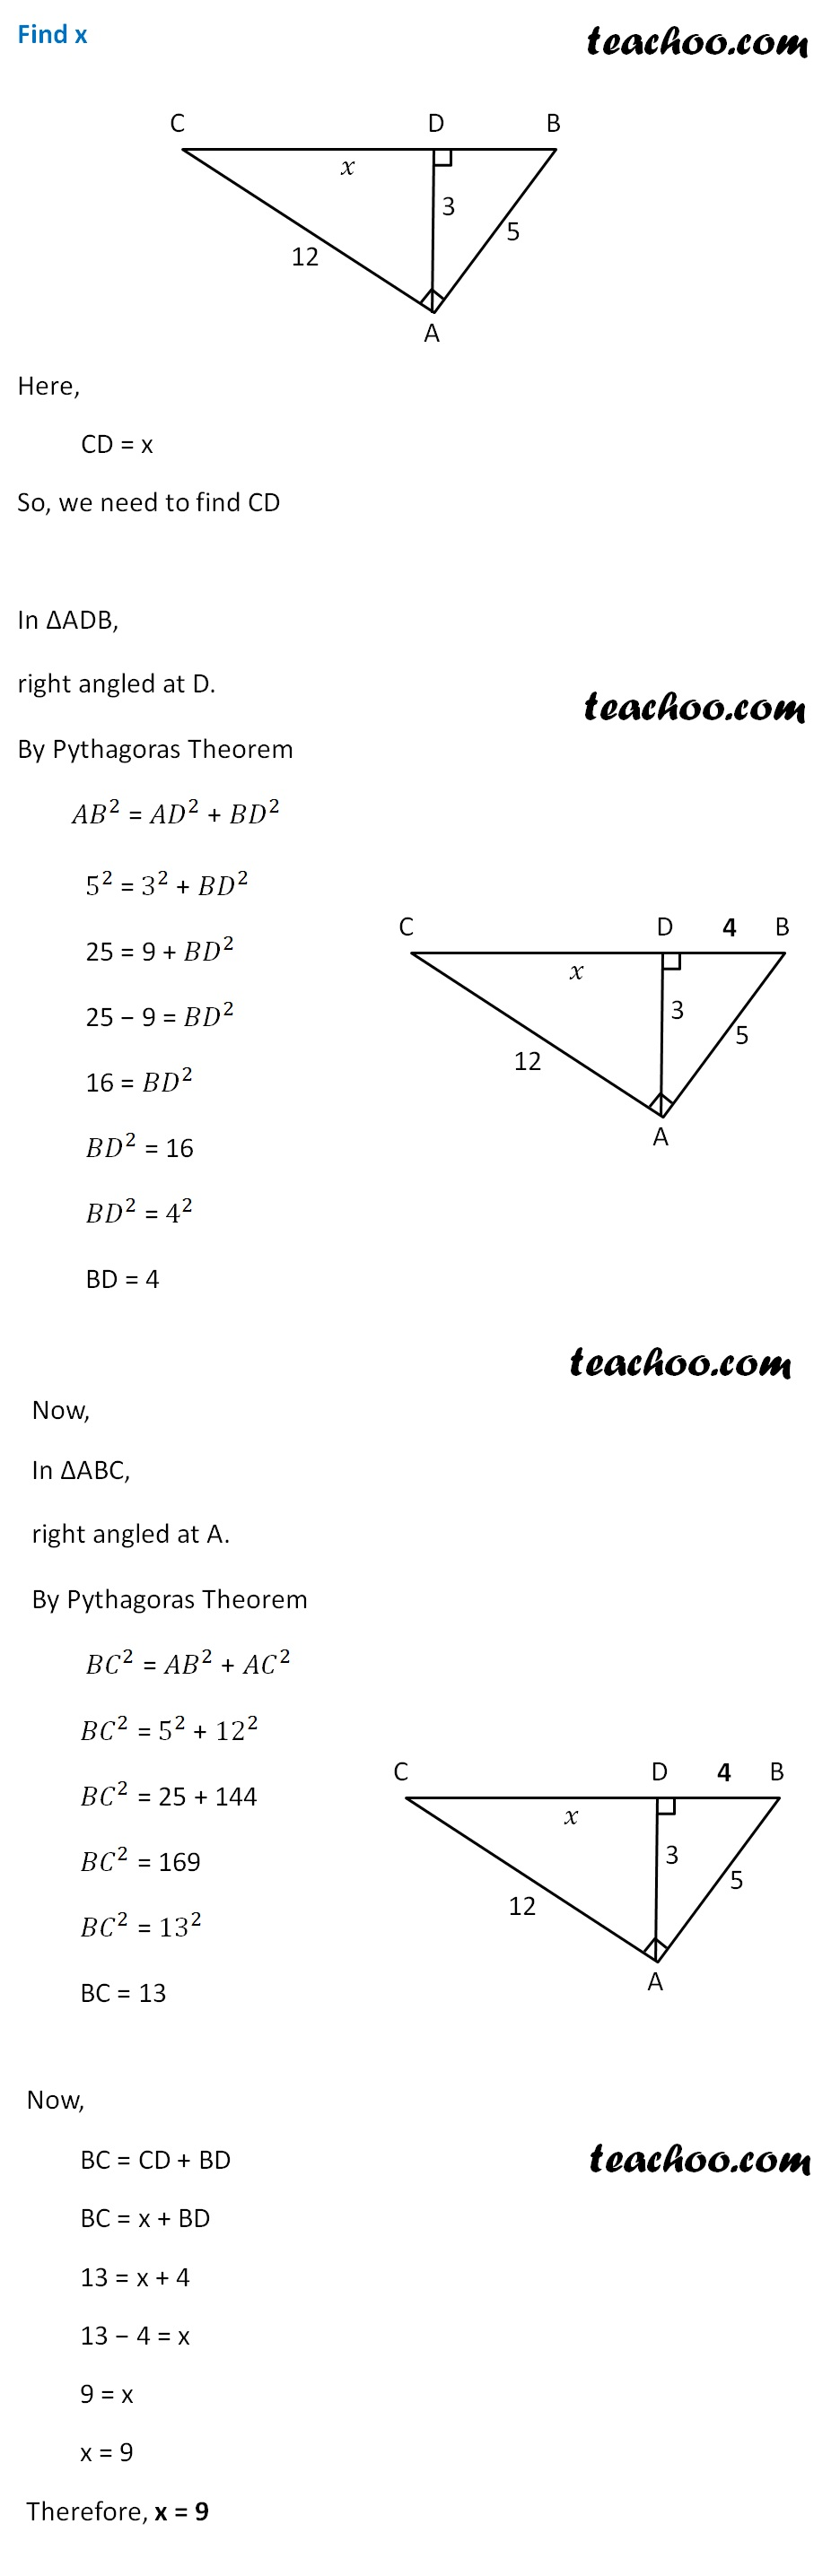 Pythagoras Theorem - Finding x - Example - Teachoo.jpg